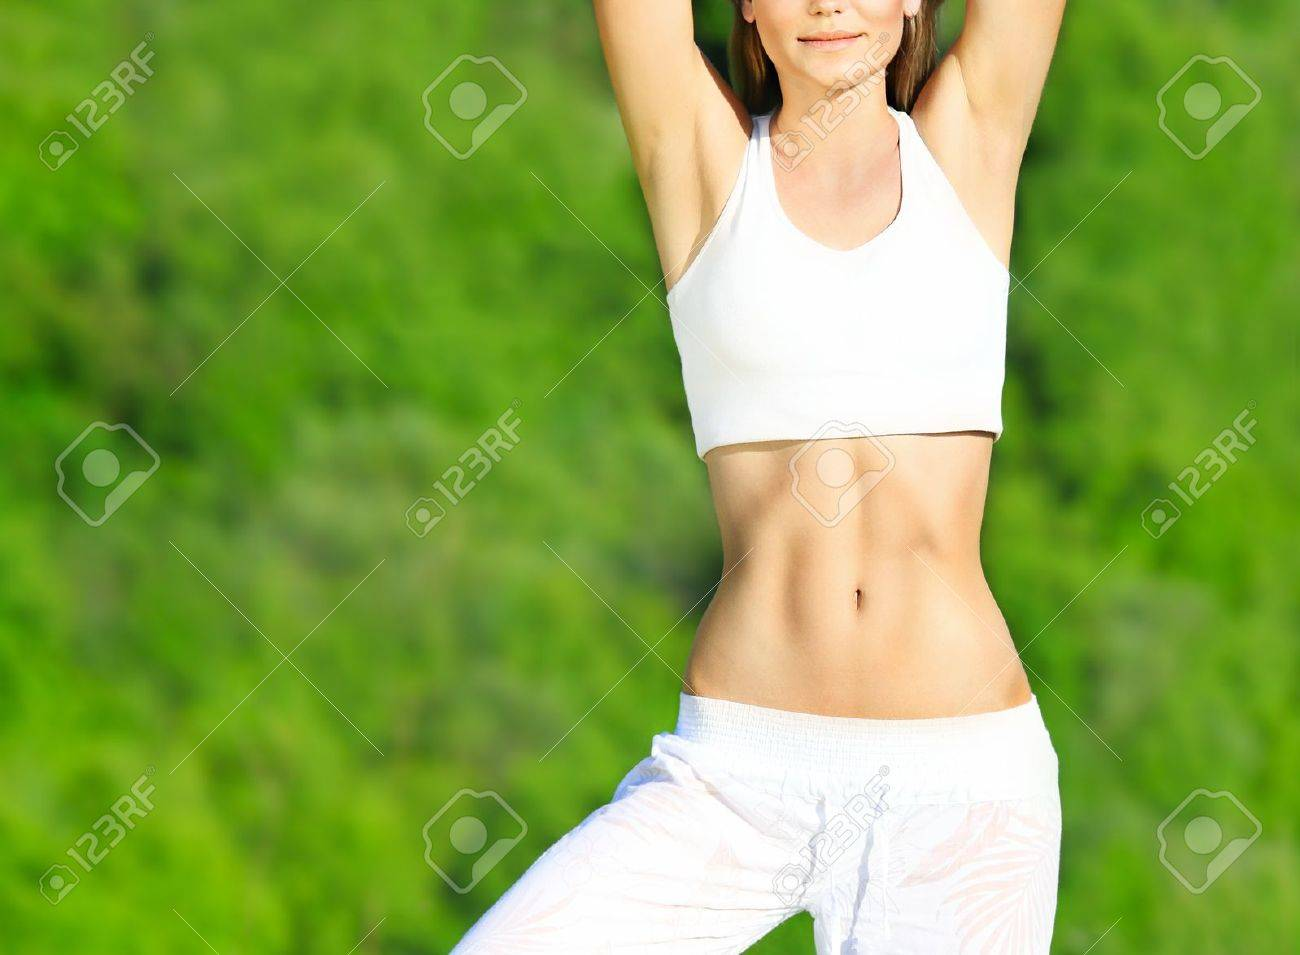 Healthy sport female body over green natural background, body care & fitness concept Stock Photo - 9763223